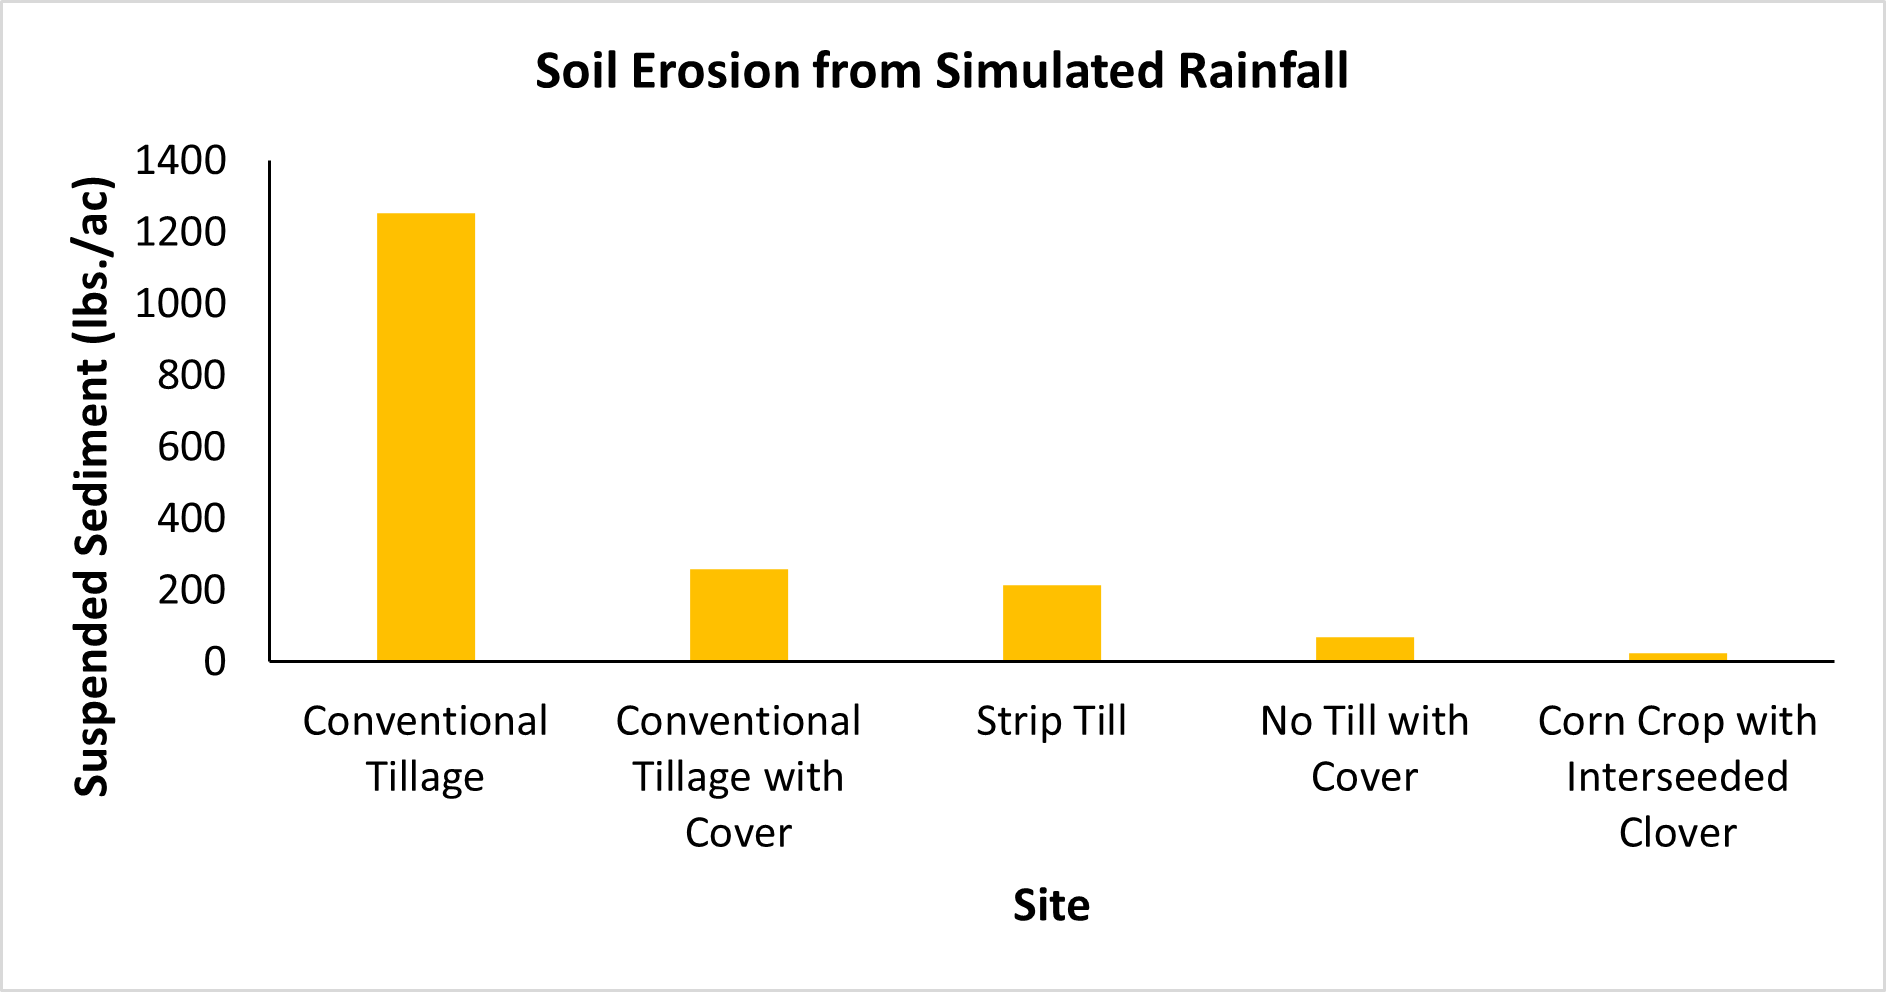 Soil erosion from simulated rainfall